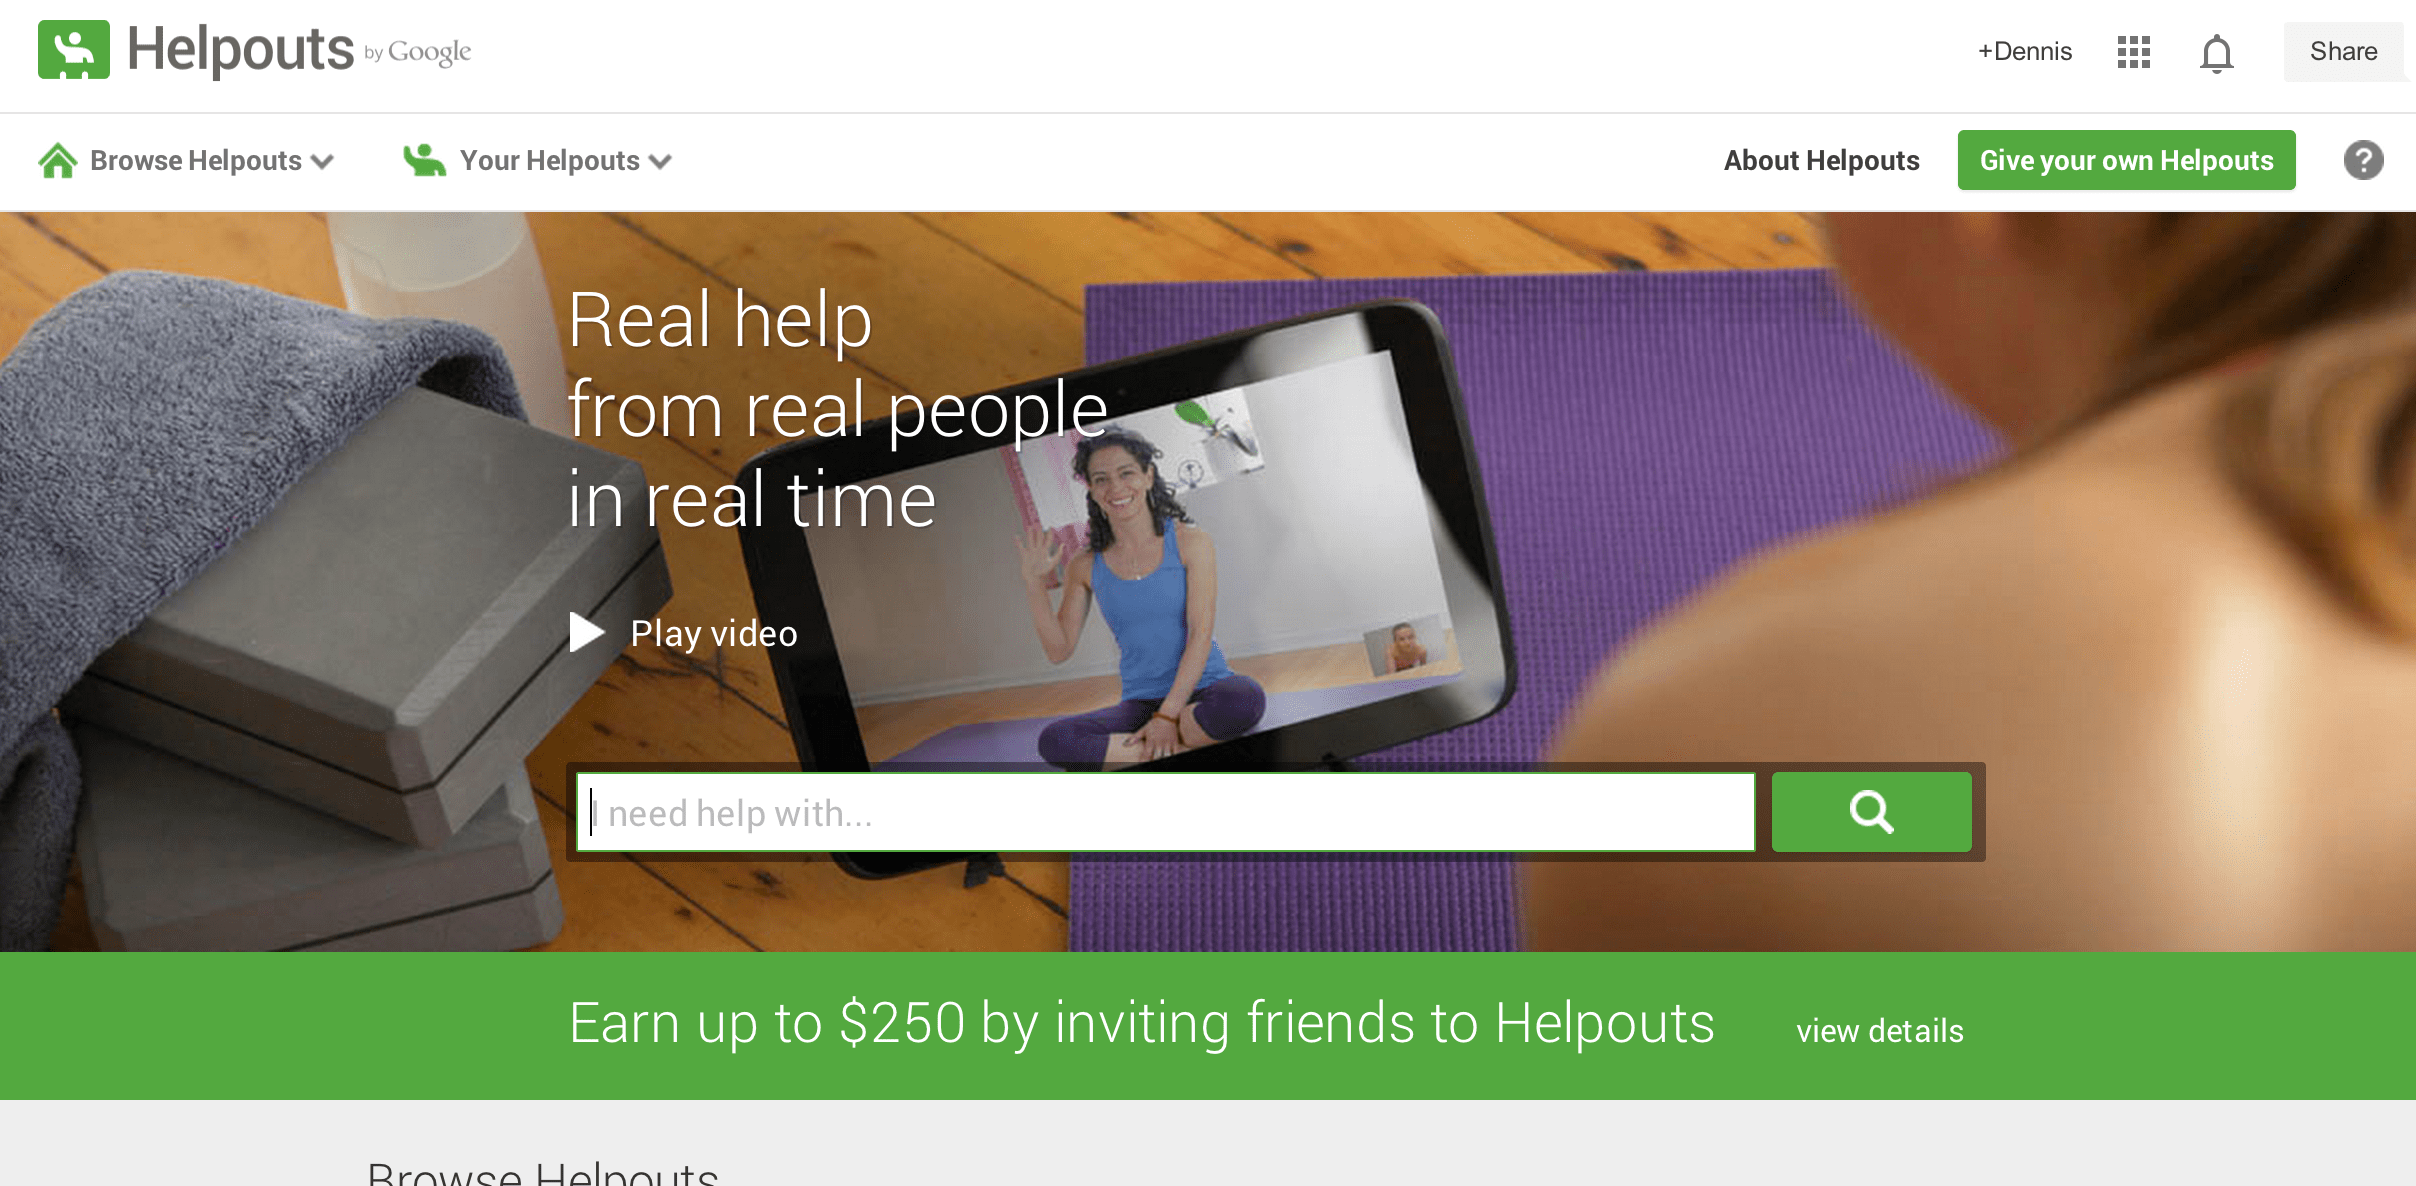 google+ helpouts service for marketing